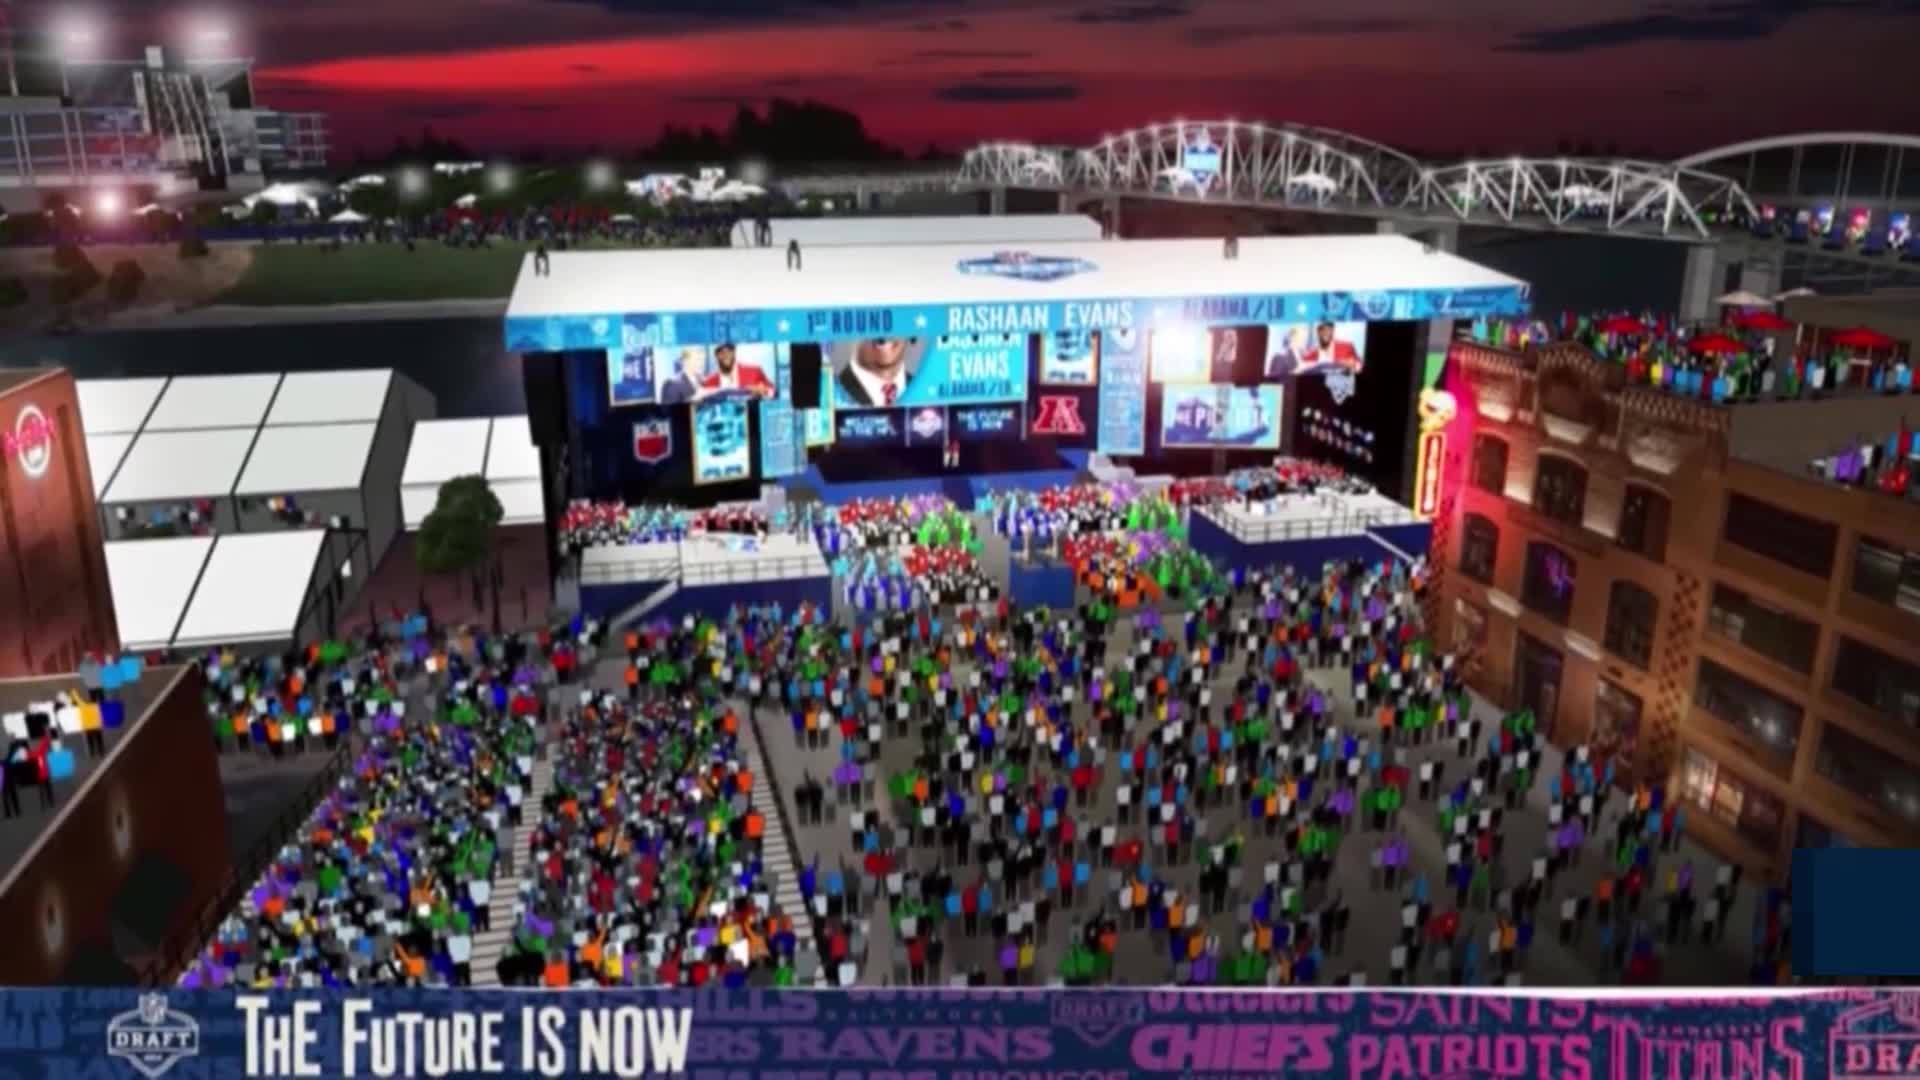 Nashville_to_host_NFL_Draft_2019_5_20190315231437-873703986